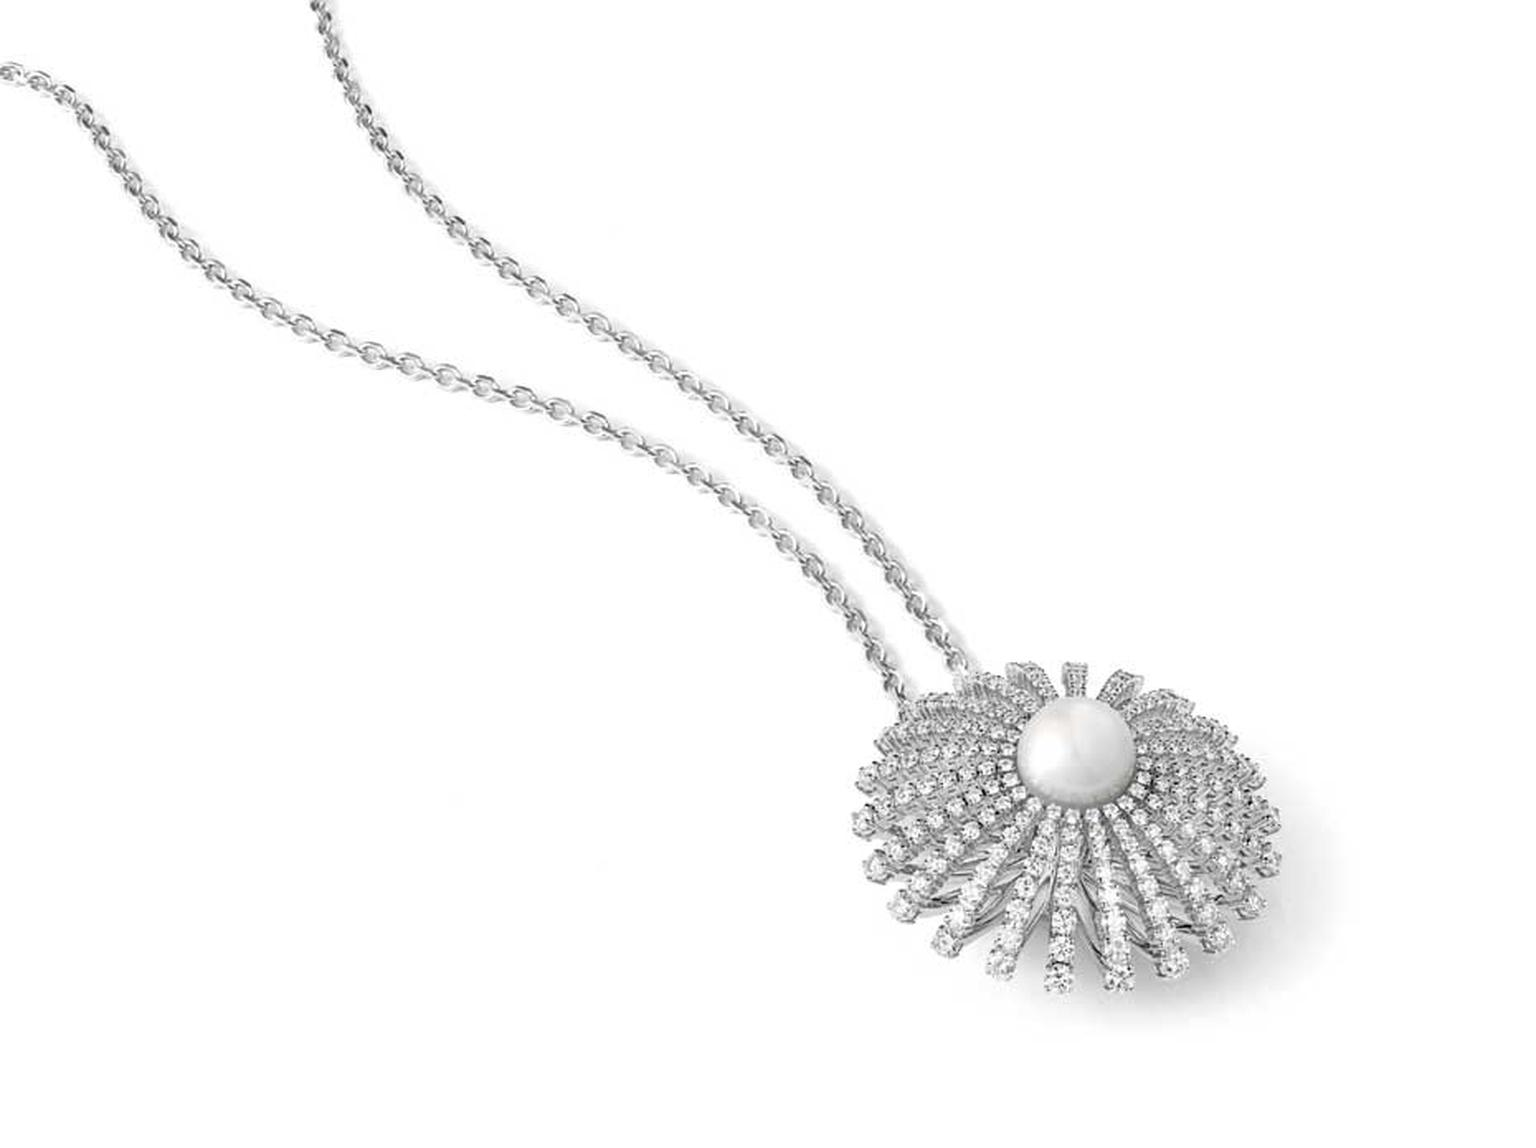 Alexander Arne Transformers pearl necklace, which can also be worn as a hairpin and ring.